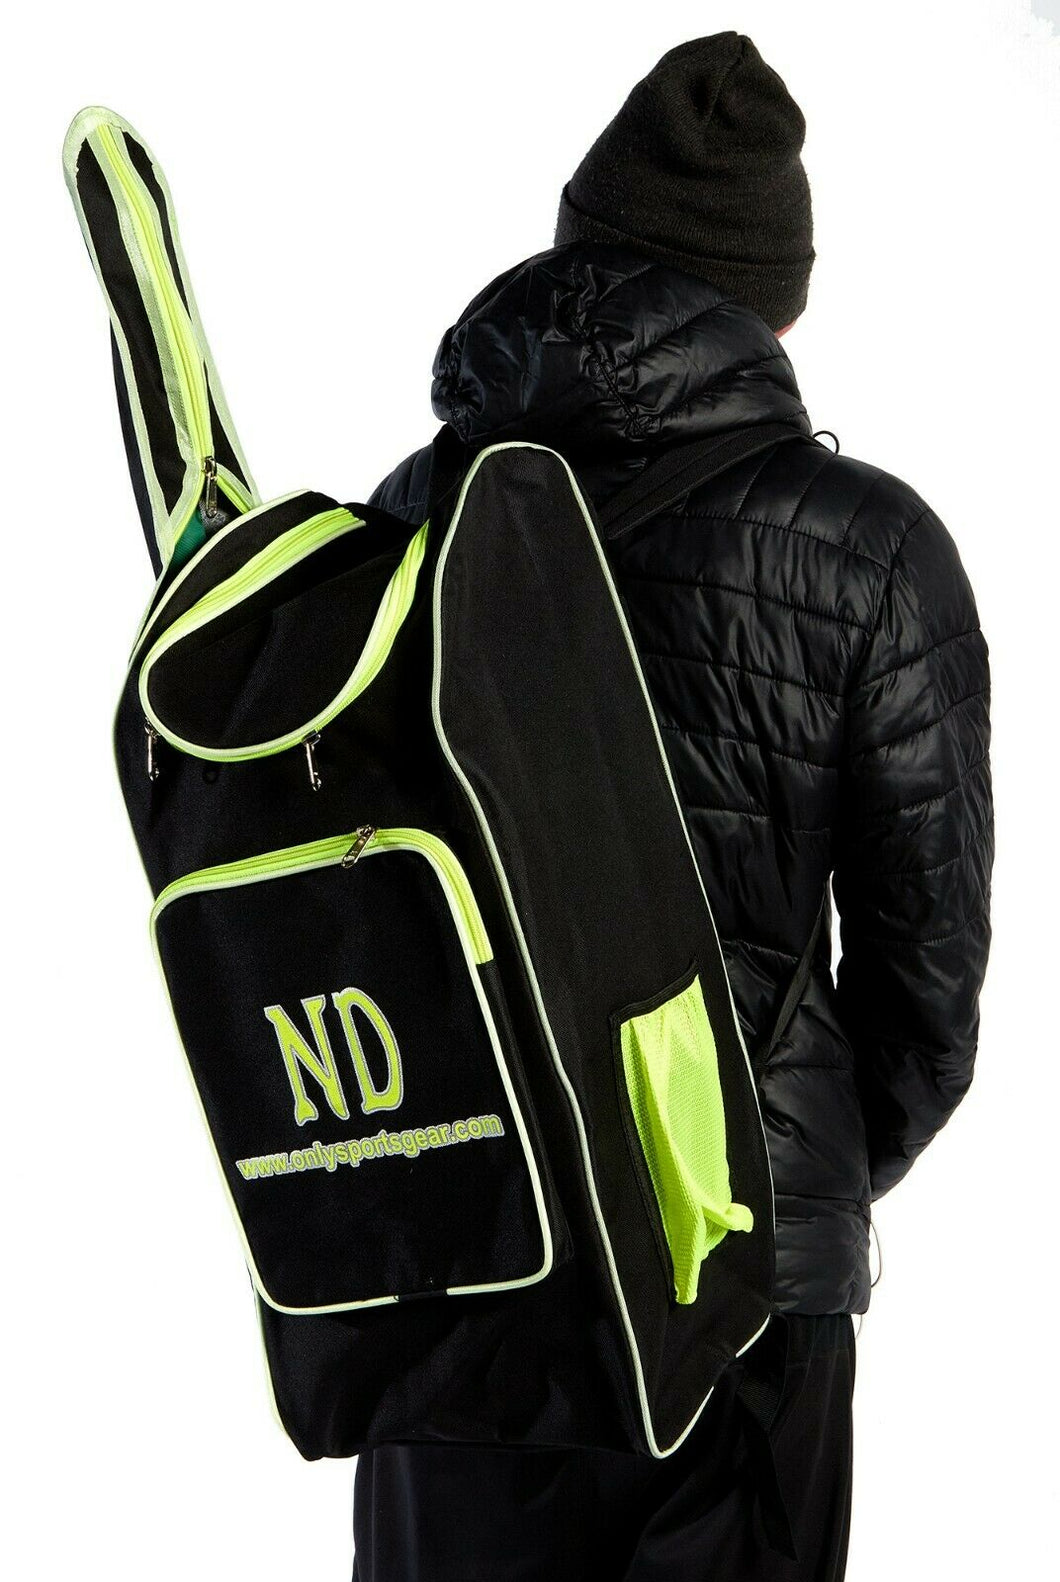 ND 5000 Medium Duffle Kit Cricket Bag 65 x 24 x 26 cm 90cm Bat Pocket